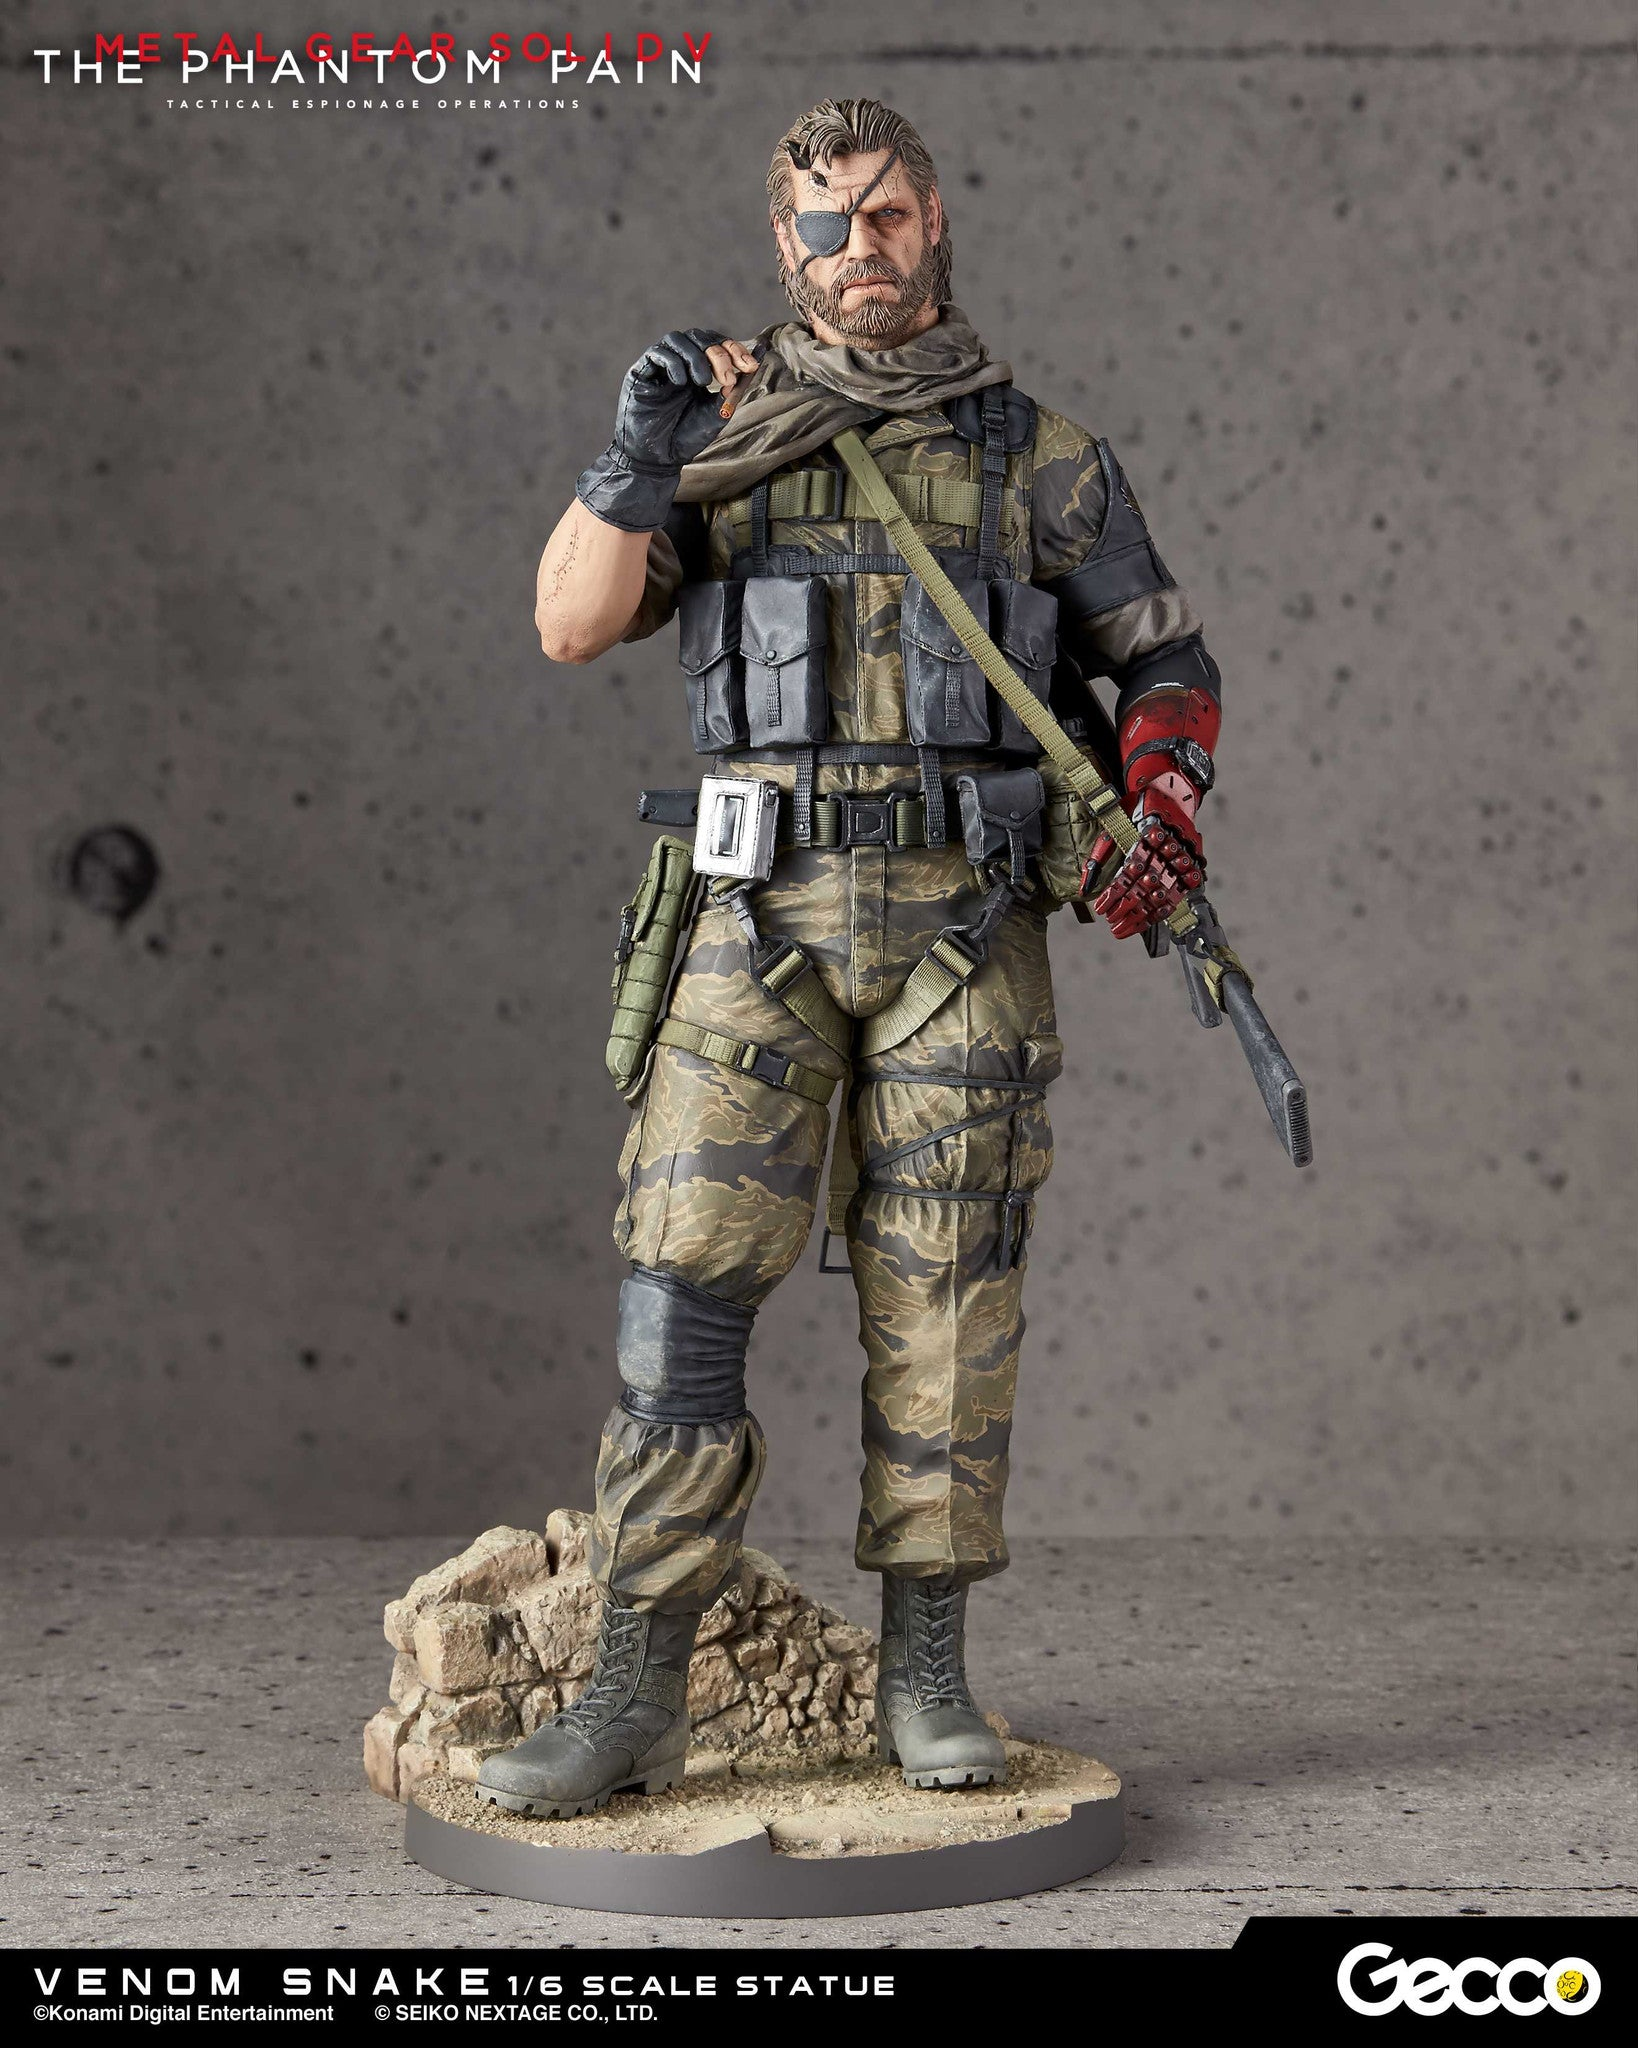 Gecco - Metal Gear Solid V: The Phantom Pain - Venom Snake 1/6 Scale Statue - Marvelous Toys - 8